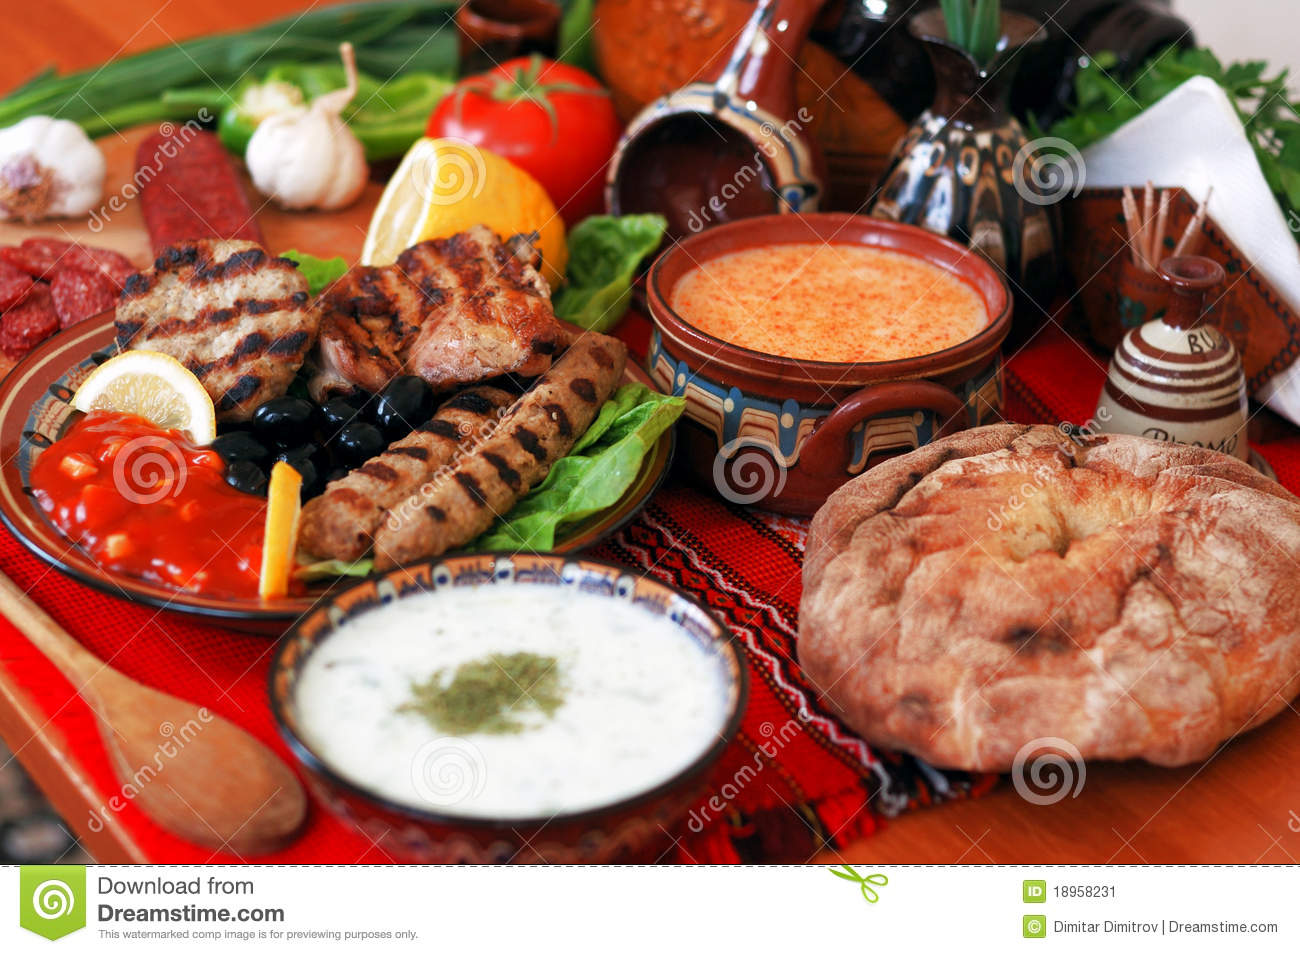 Dining Table With Food traditional bulgarian dining-table stock image - image: 18958231